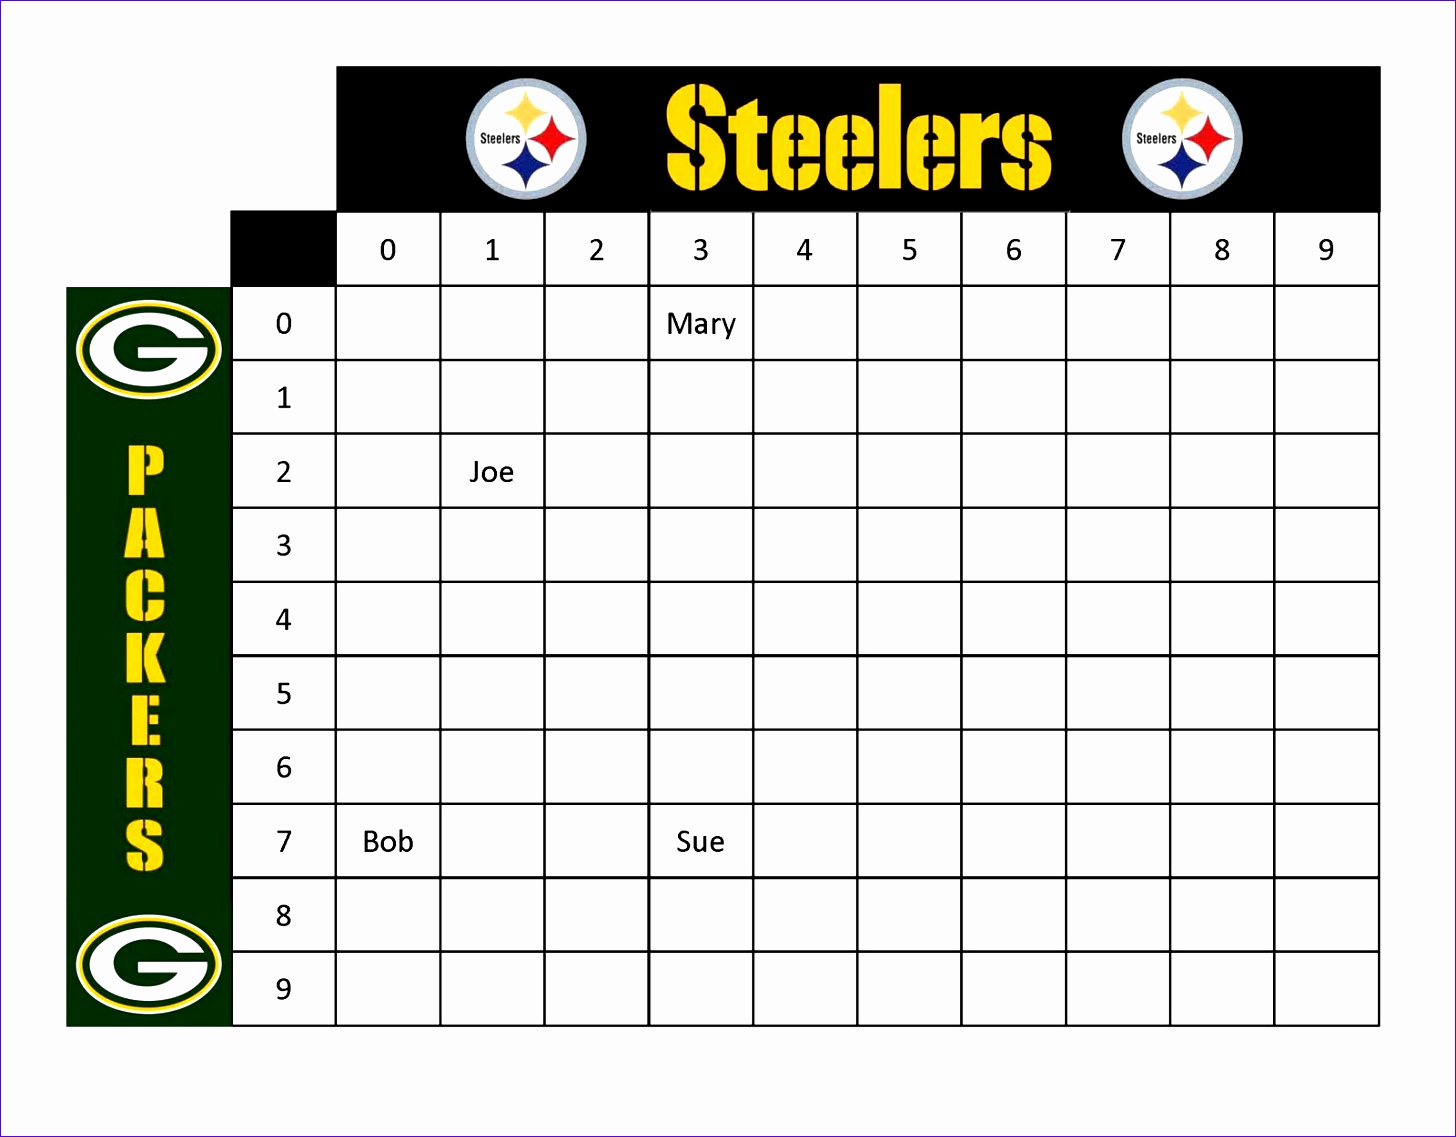 Super Bowl Squares Template Excel Unique 12 Football Squares Template Excel Exceltemplates